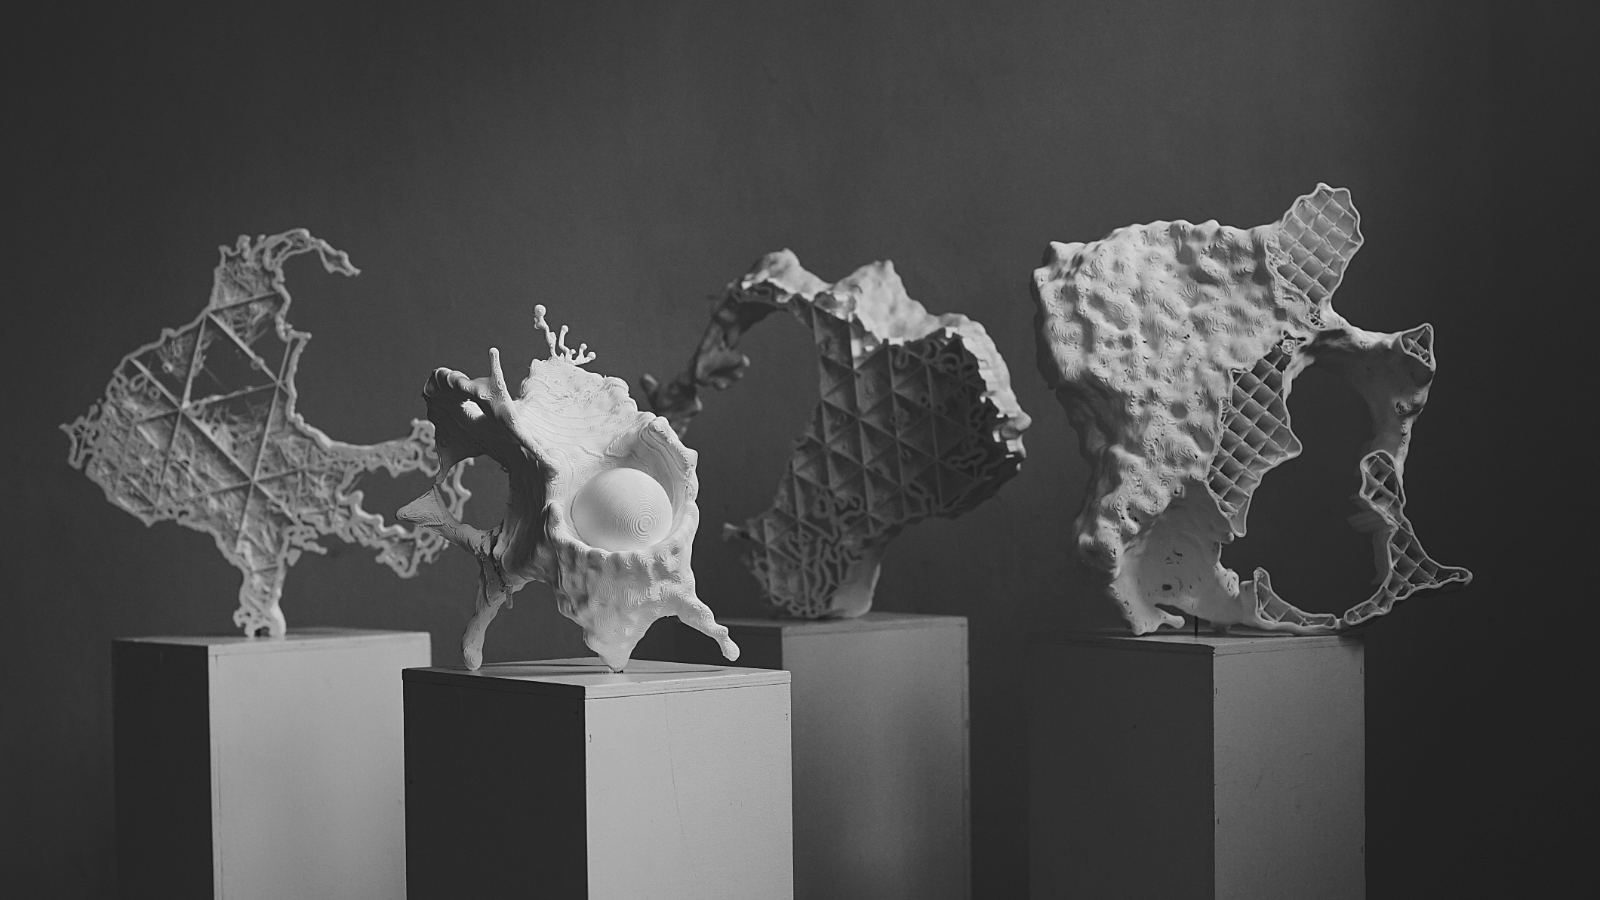 A selection of 3D-printed shapes on pedestals, resembling natural patterns mixed with geometric designs.